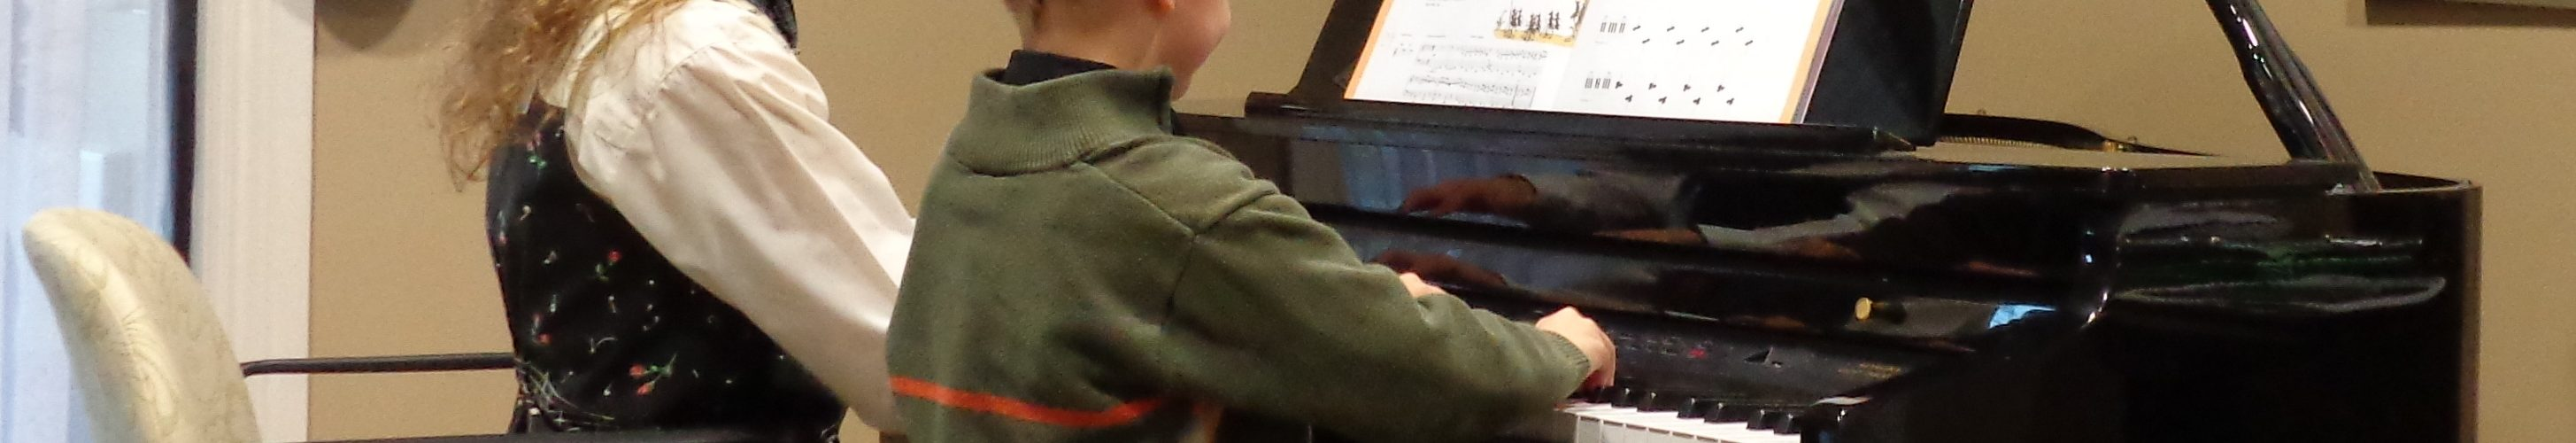 Choosing a music teacher for piano lessons for beginners